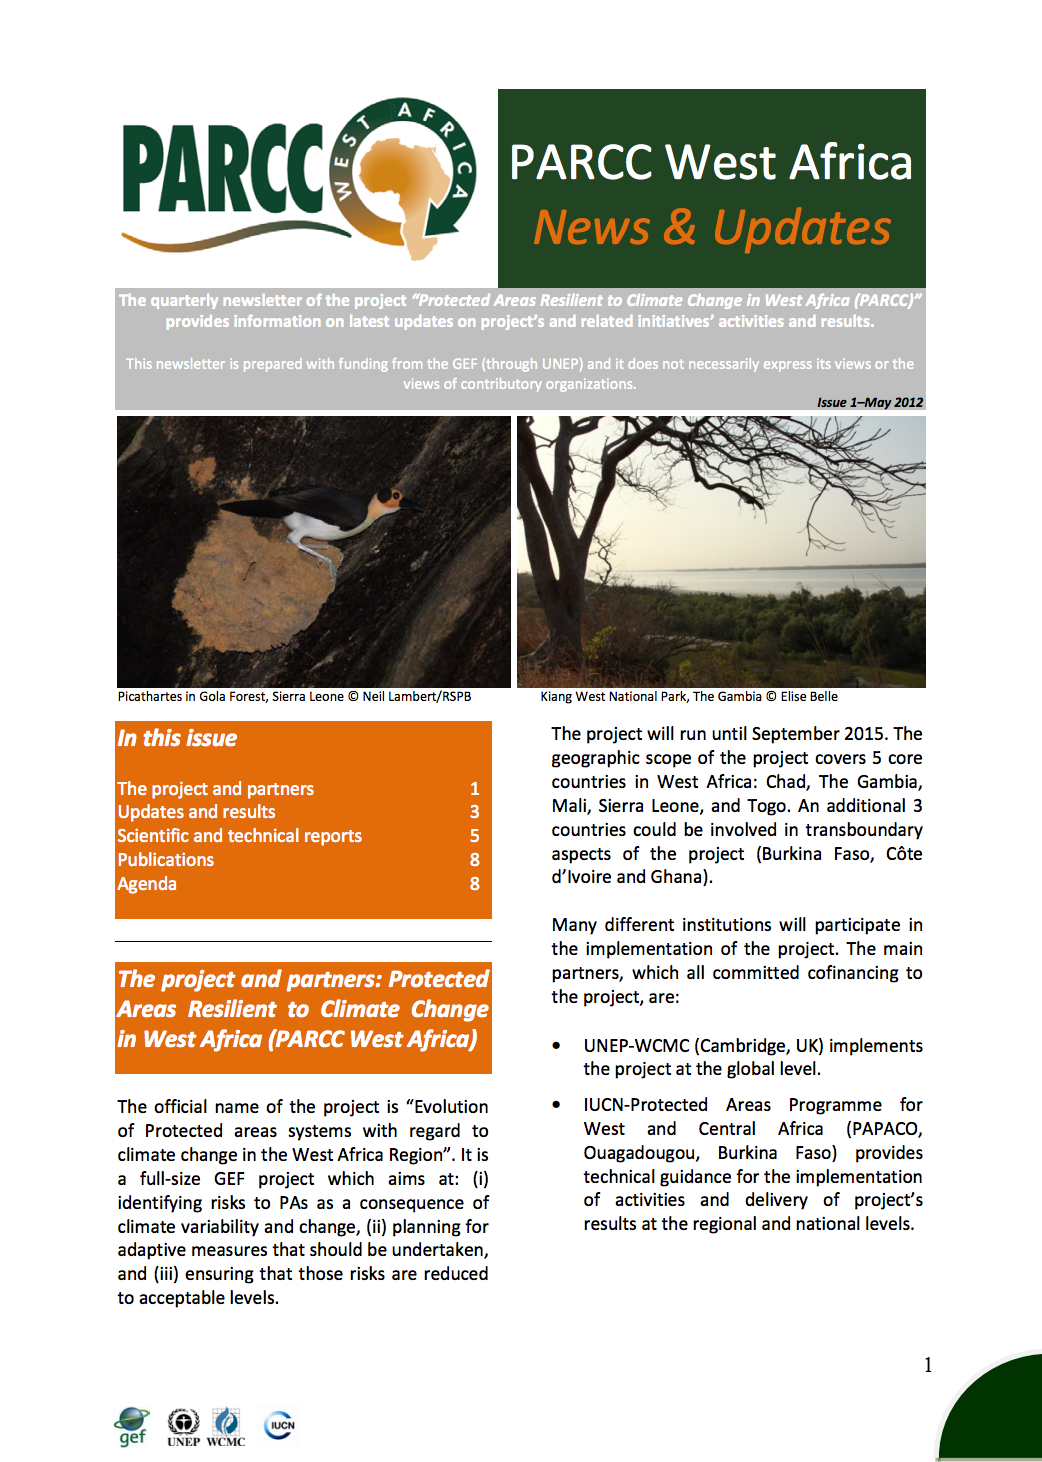 Newsletter number 1